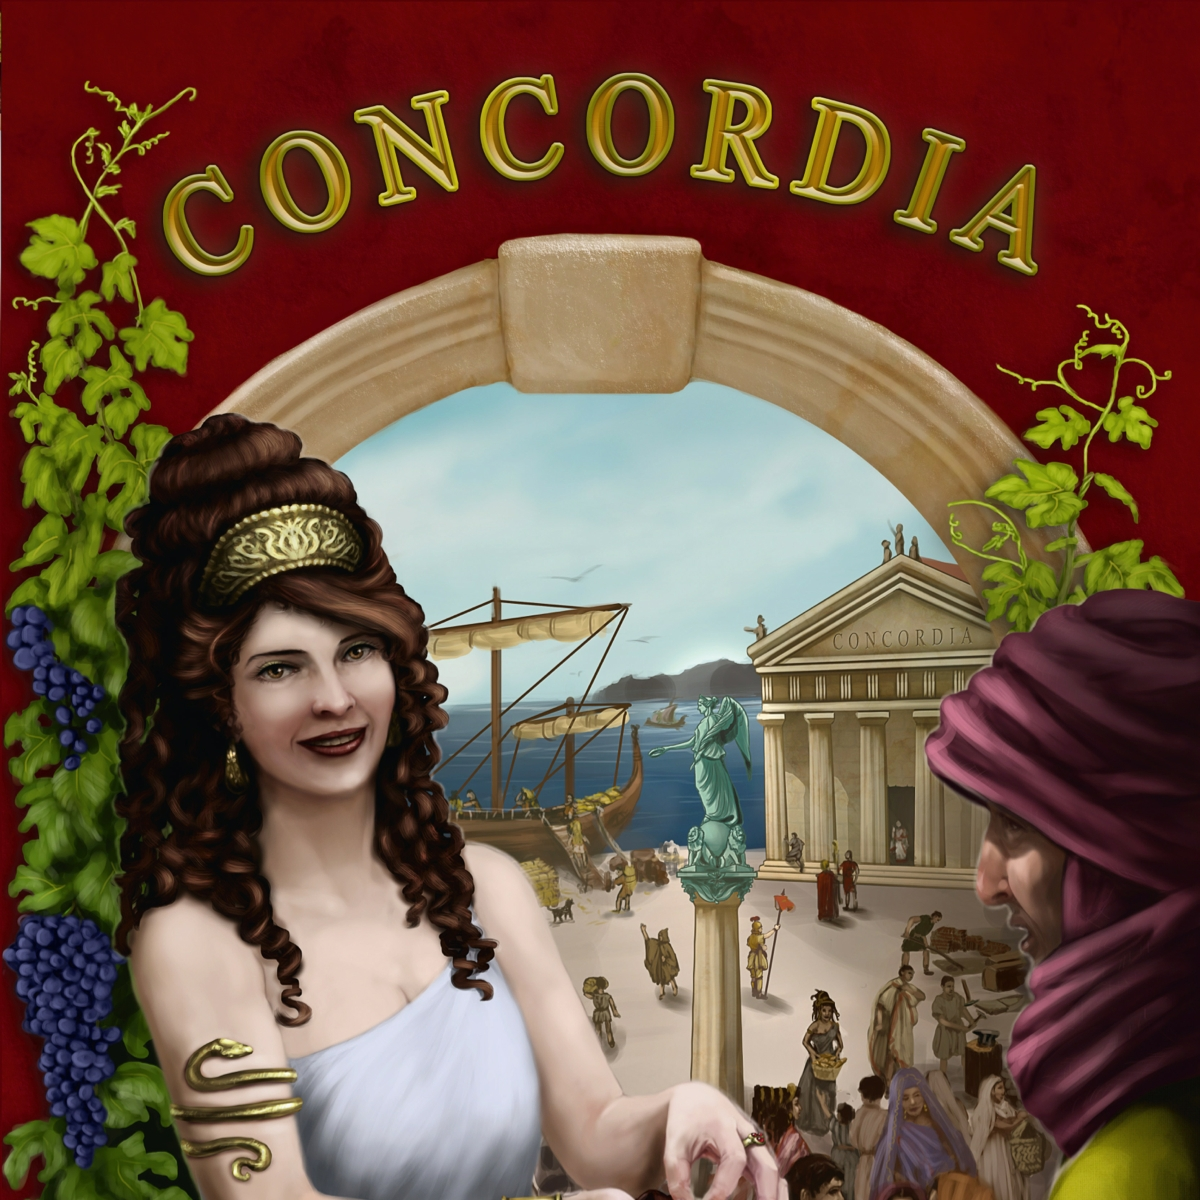 Concordia - Video - Cardboard Cutouts: 3 Great Games Beyond Catan